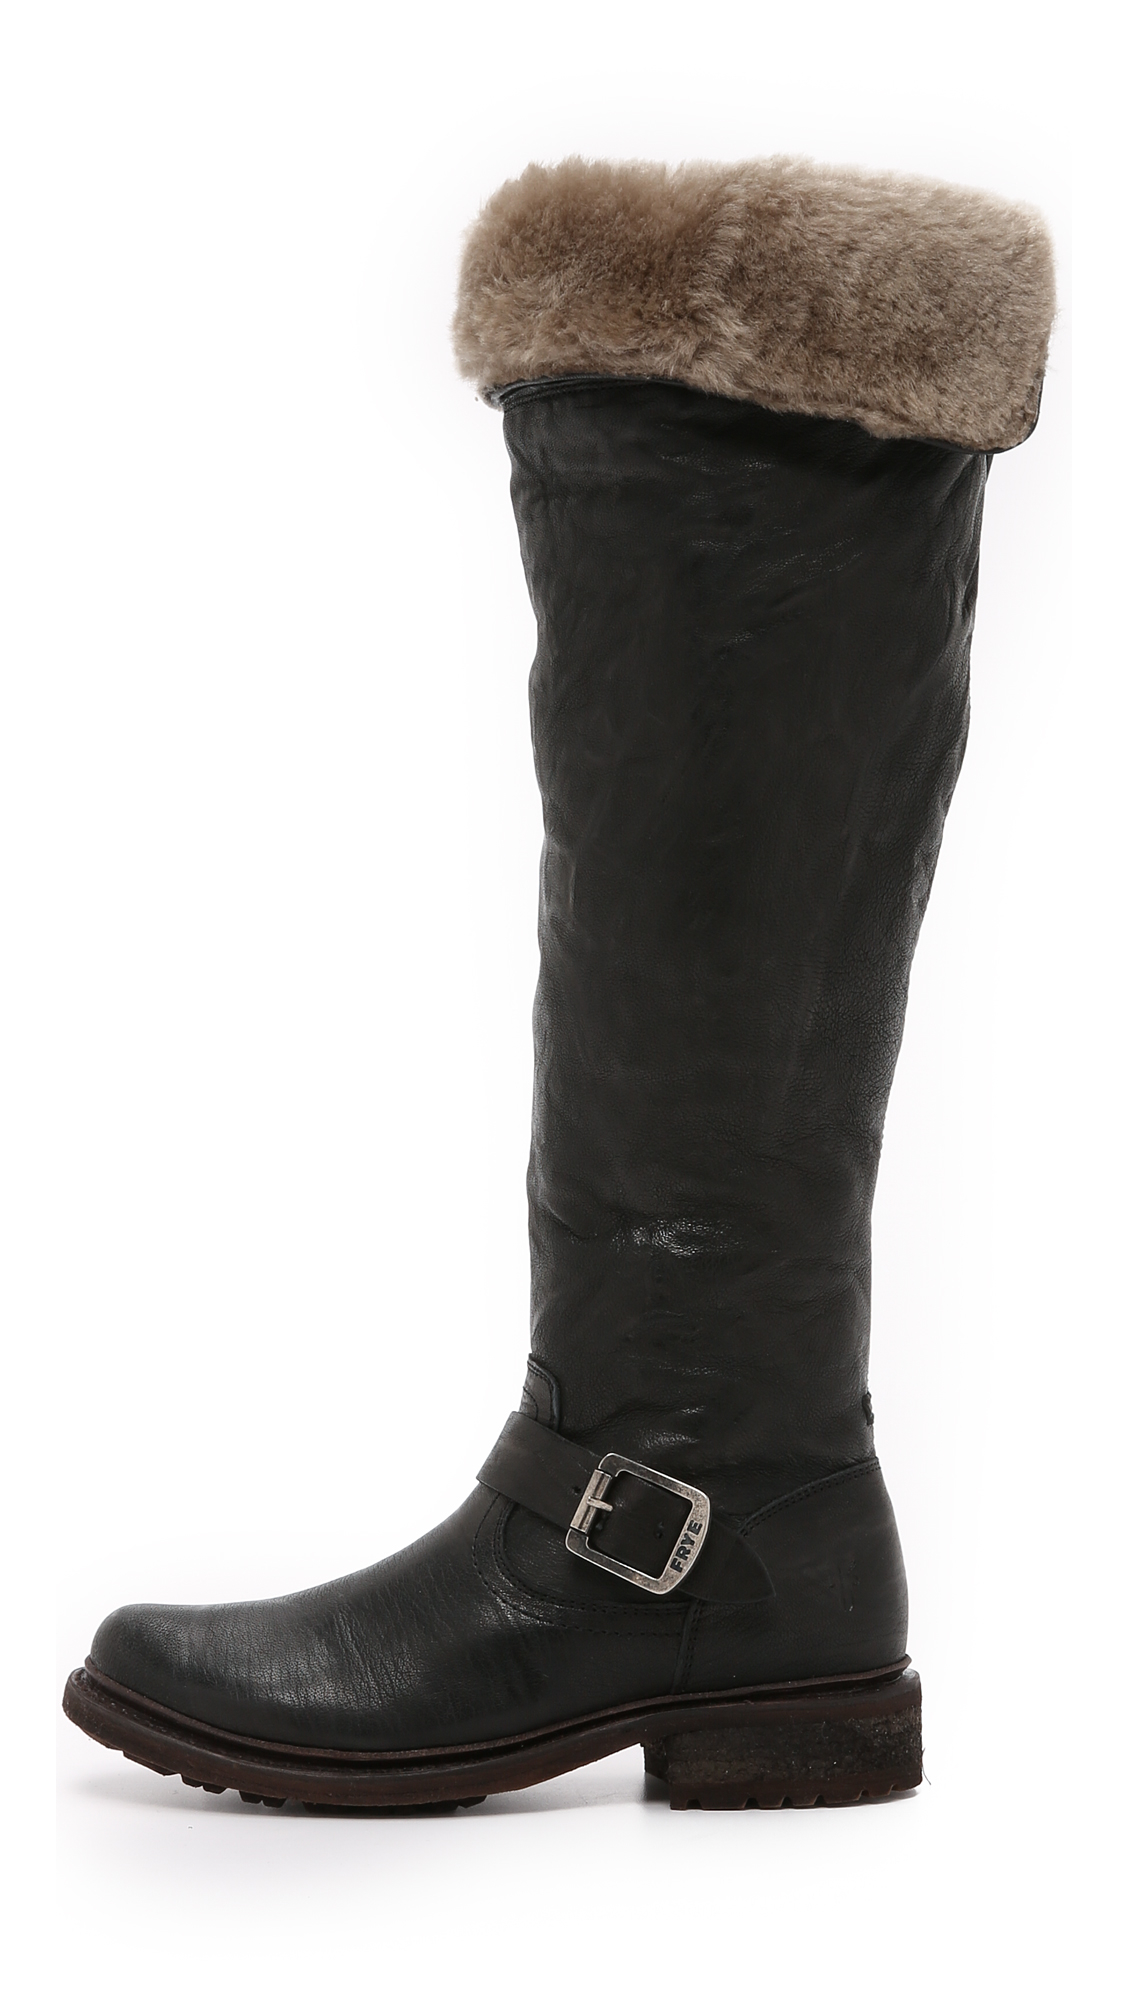 a9ebd8df363 Frye Valerie Shearling Over The Knee Boots in Black - Lyst